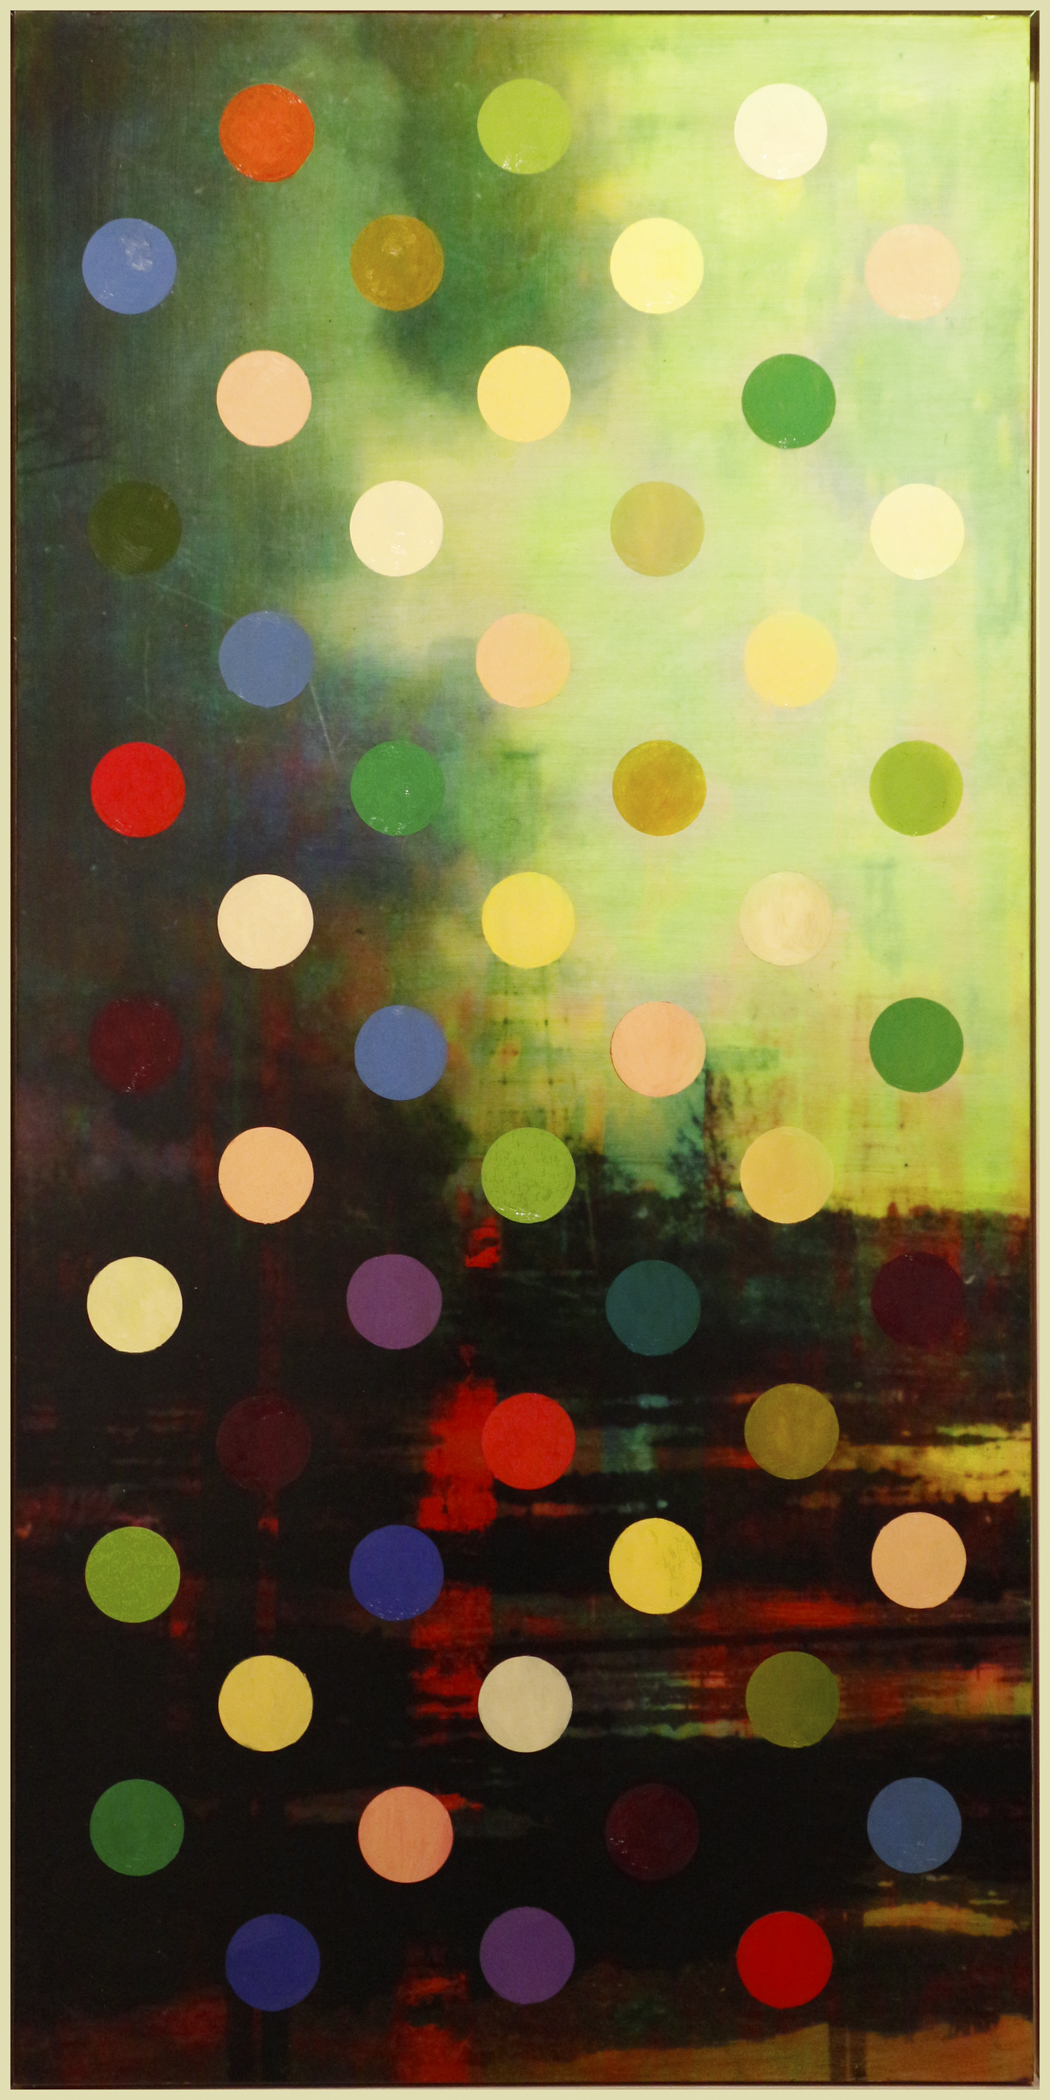 "Polka Dot Oil Patch, oil paint and archival ink on board, 72"" x 36"", 2013-2014"